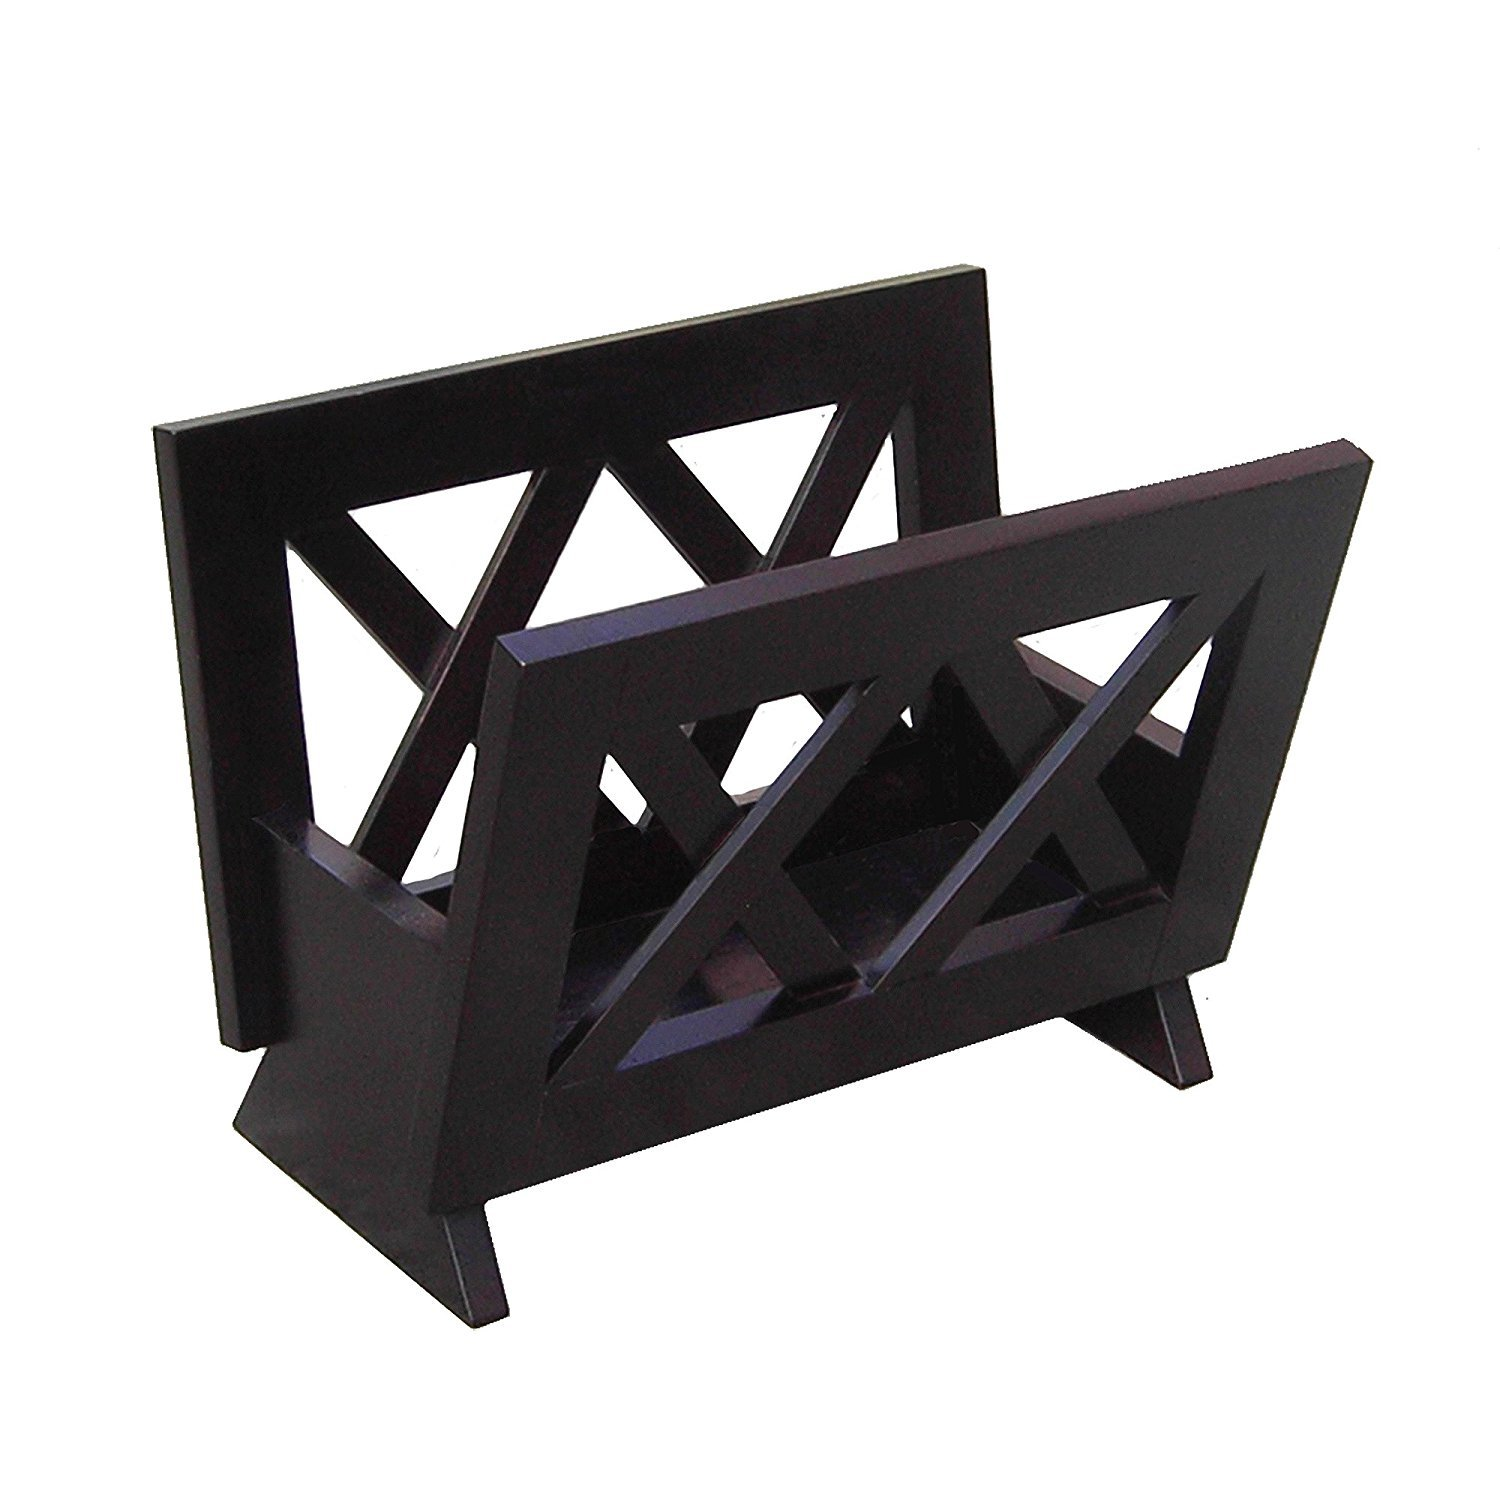 Oceanstar M1125 Contemporary Solid Wood Magazine Rack, Mahogany Finished by Oceanstar Design Group